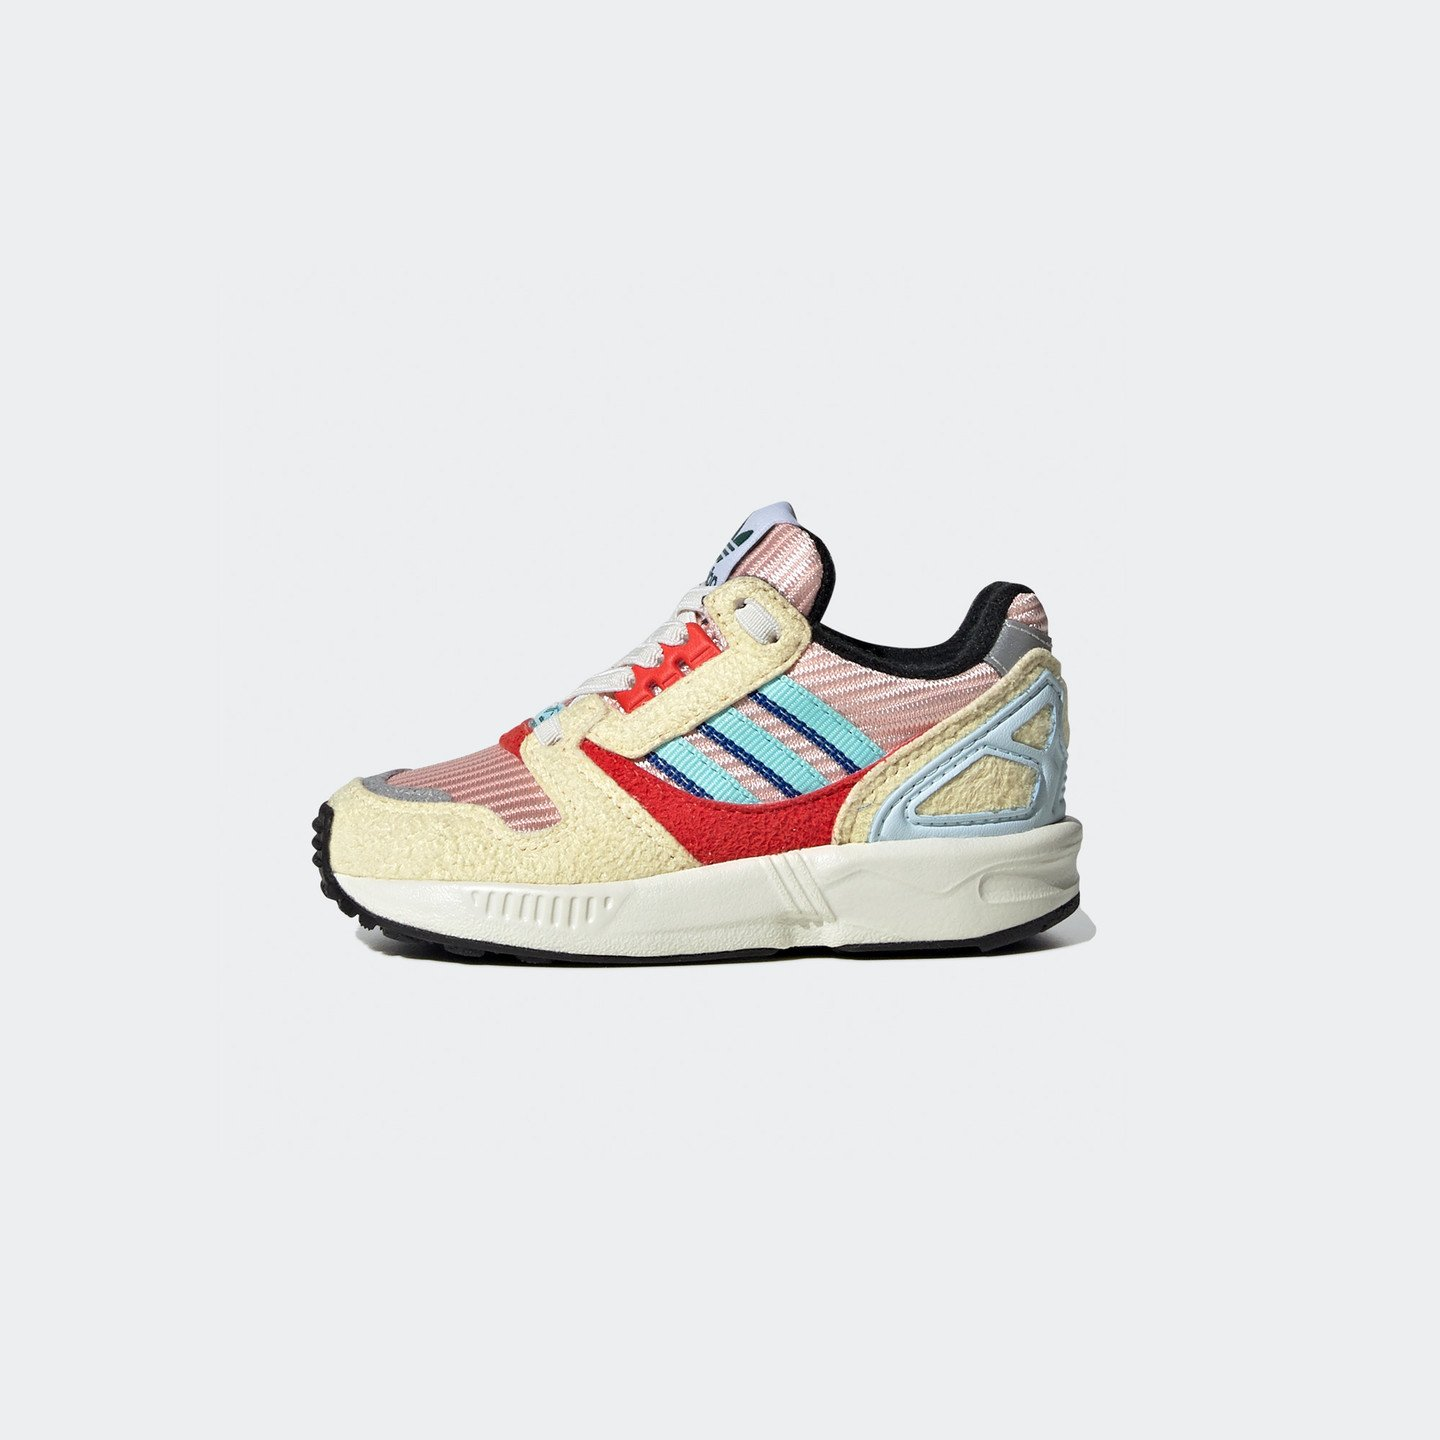 Adidas ZX 8000 EL Inf 'Vapour Pink' Vapour Pink / Clear Aqua / Easy Yellow EG2913